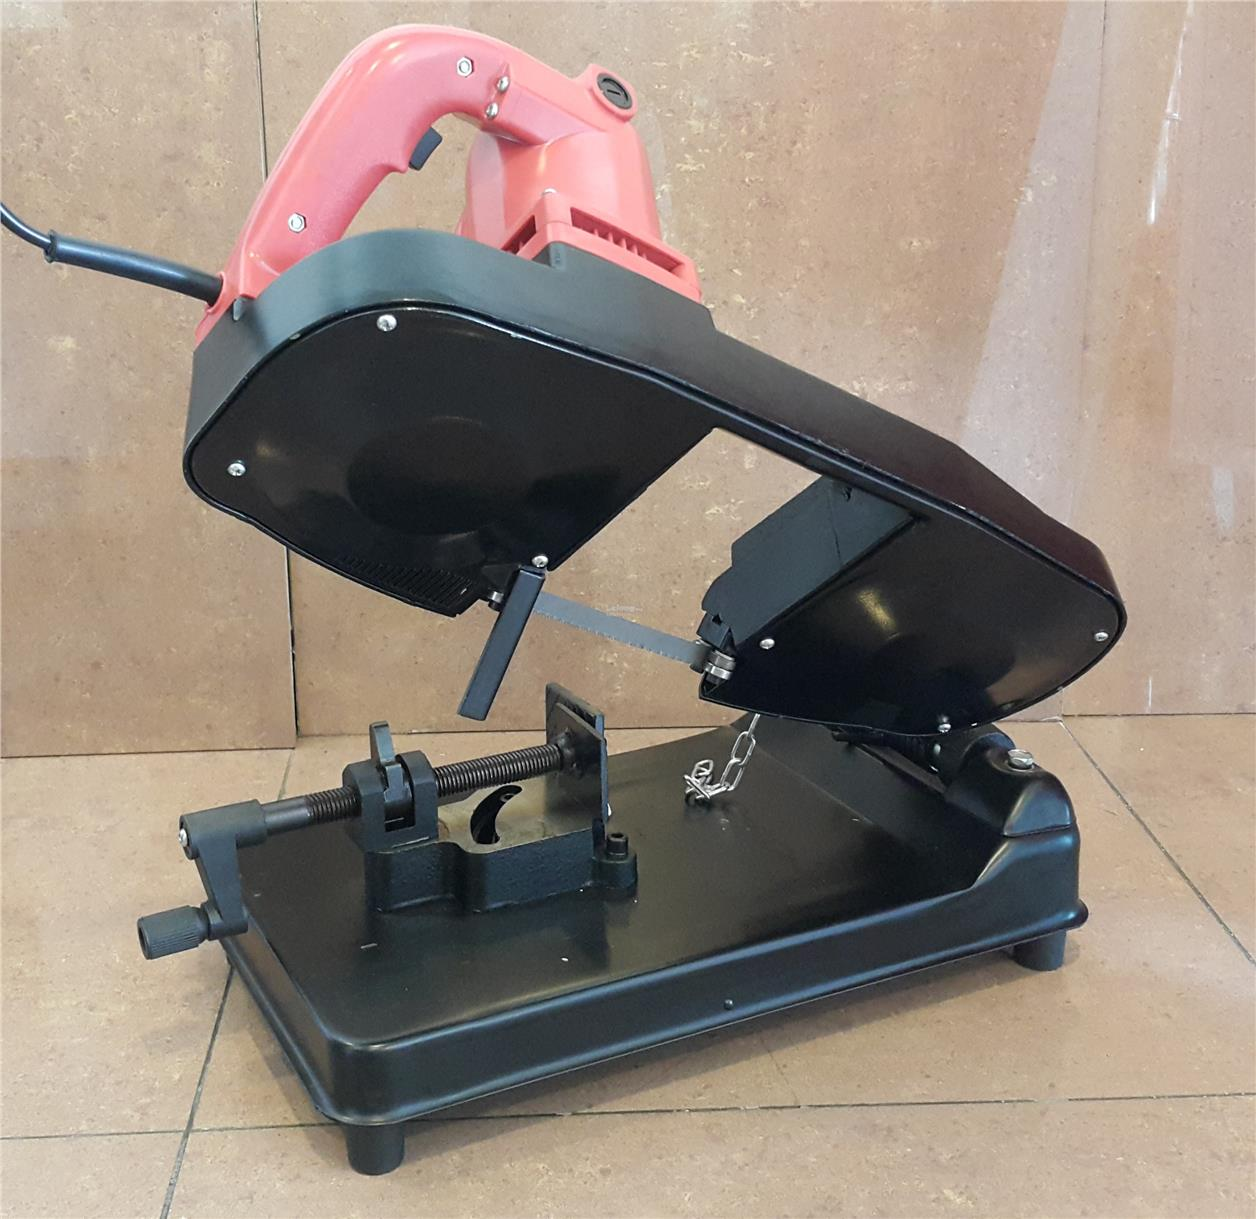 g2a bench band saw id337433 end 11 26 2016 9 15 pm myt